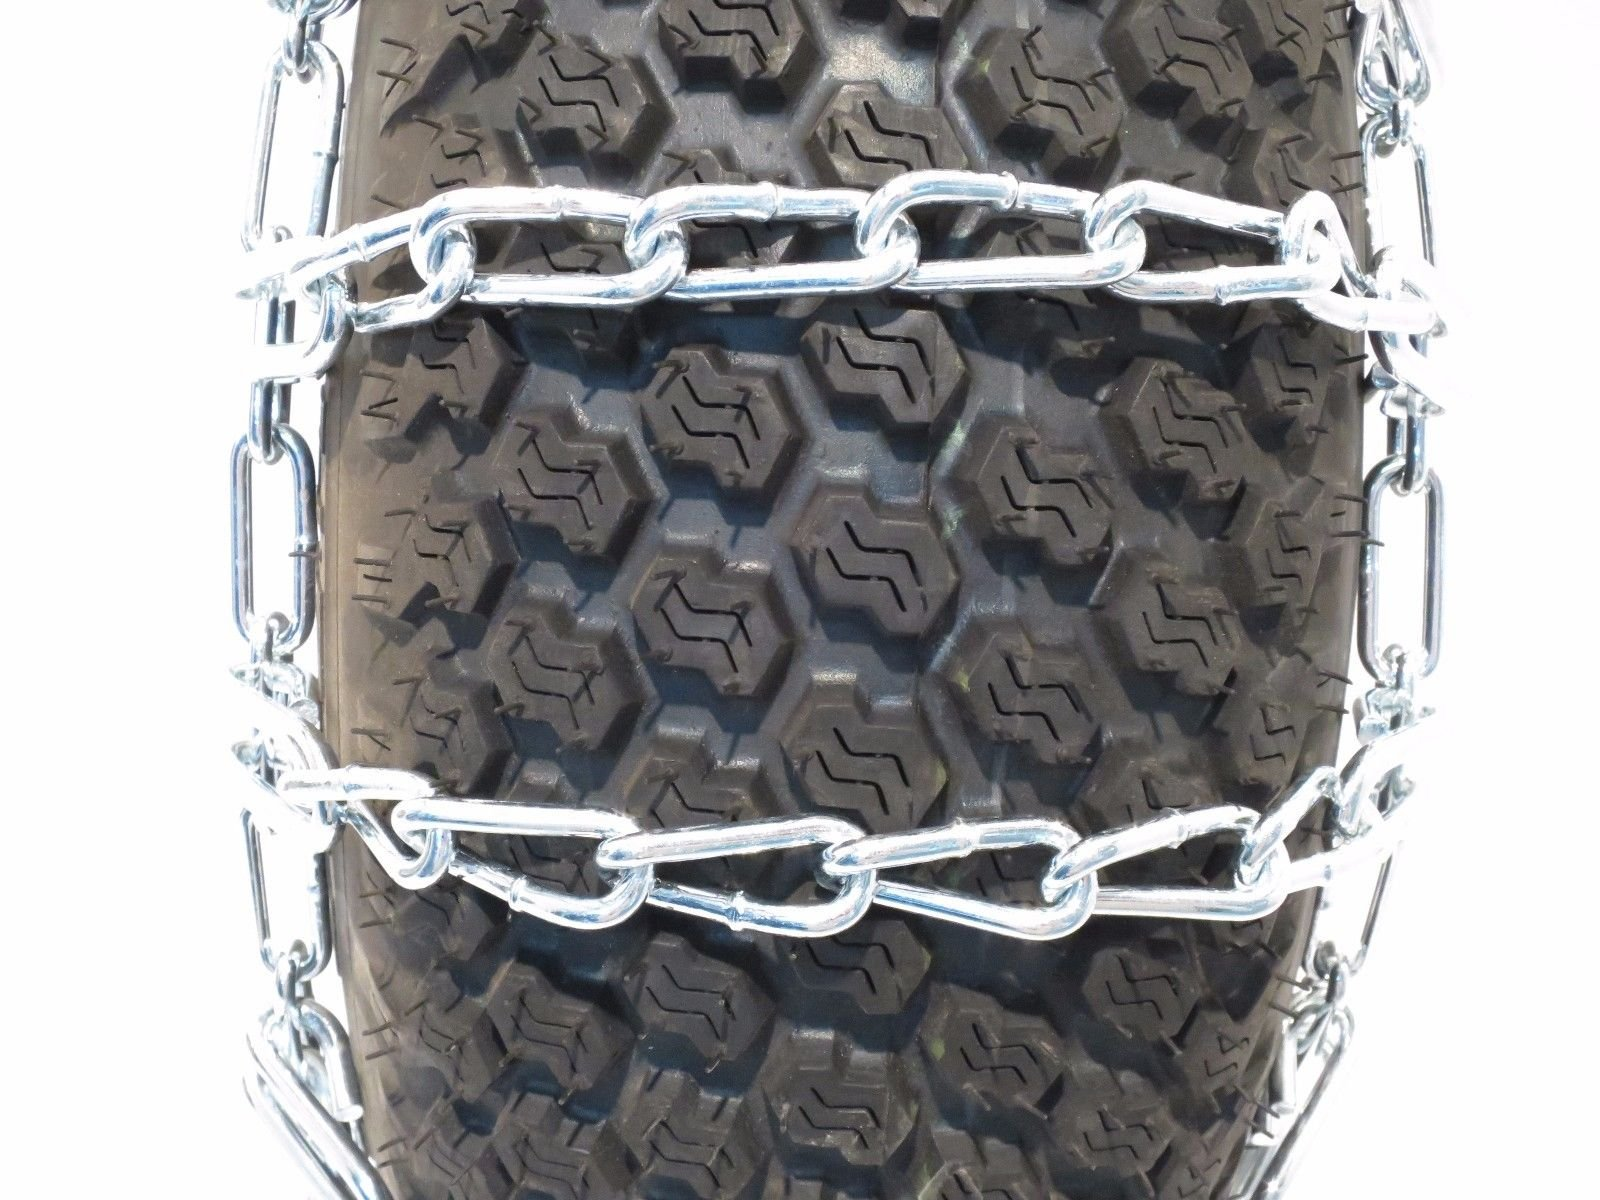 The ROP Shop 2 Link TIRE Chains & TENSIONERS 23x10.5x12 for MTD Cub Cadet Lawn Mower Tractor by The ROP Shop (Image #4)